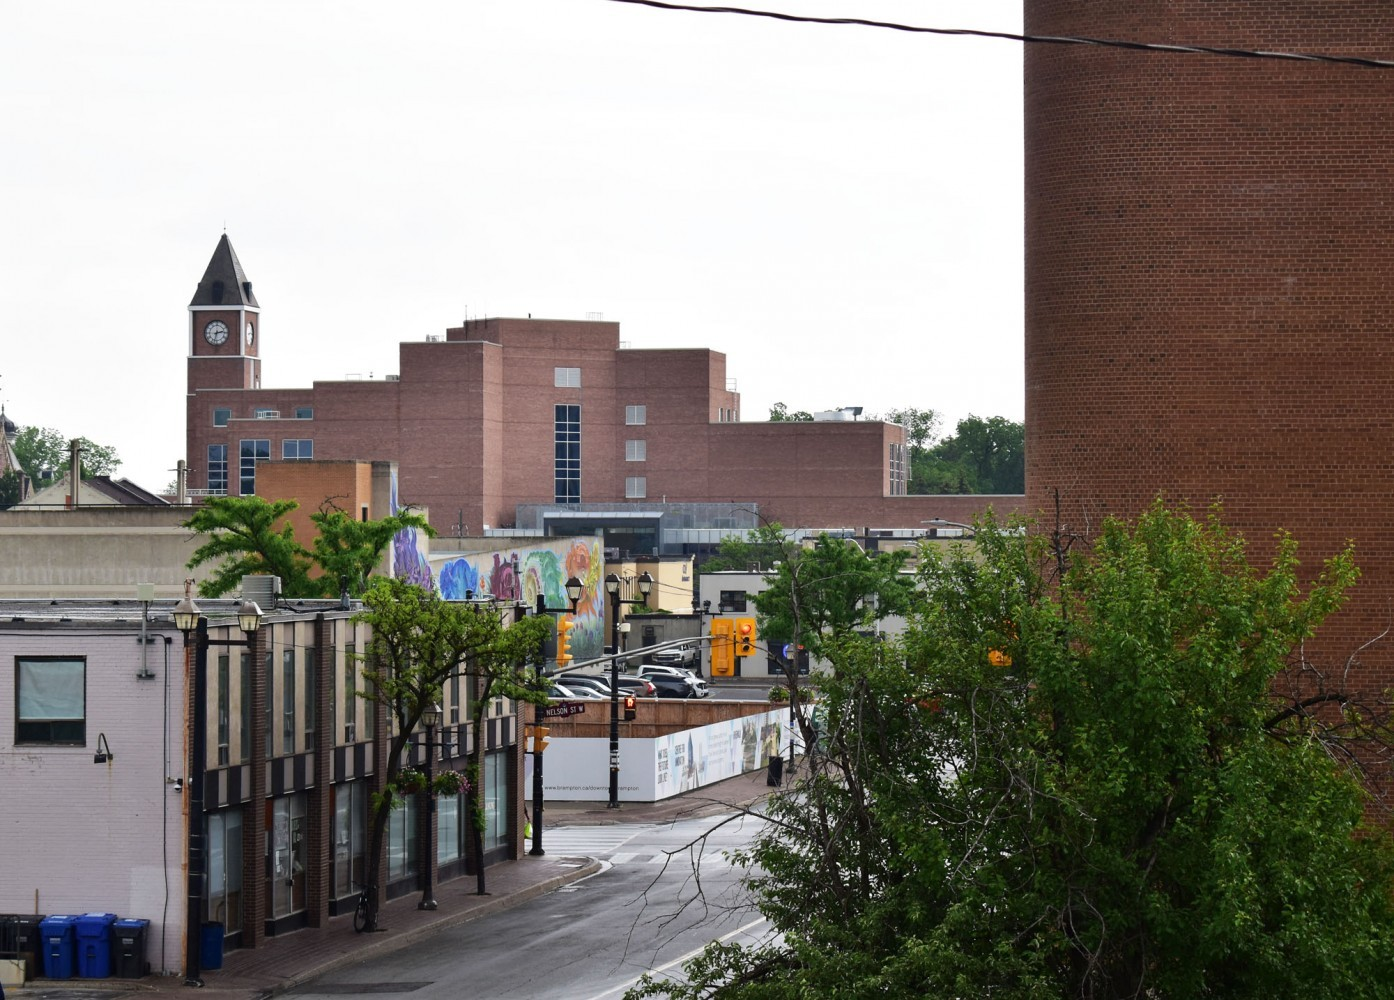 'Money can be used better elsewhere': City's new plan to coordinate downtown revitalization criticized as more talk than action